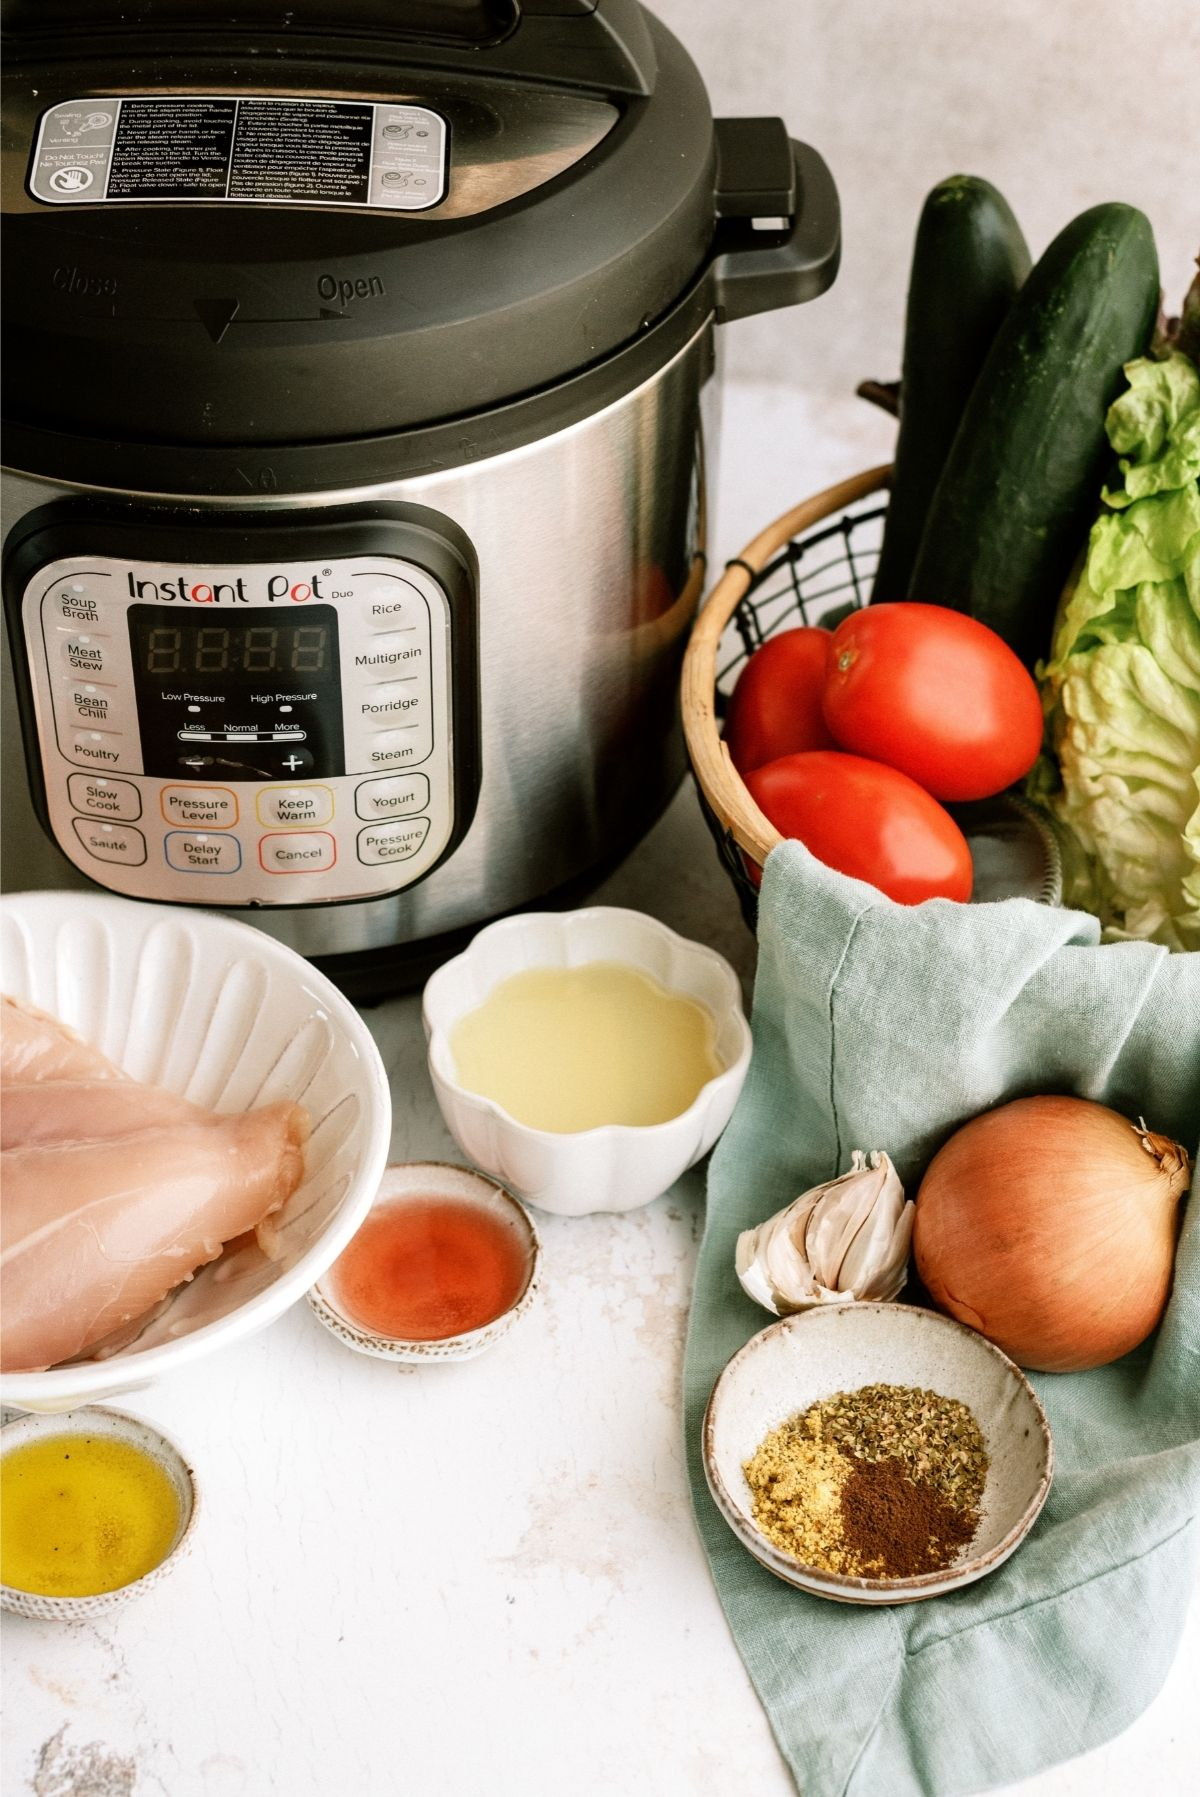 Ingredients for Instant Pot Chicken Gyros Recipe